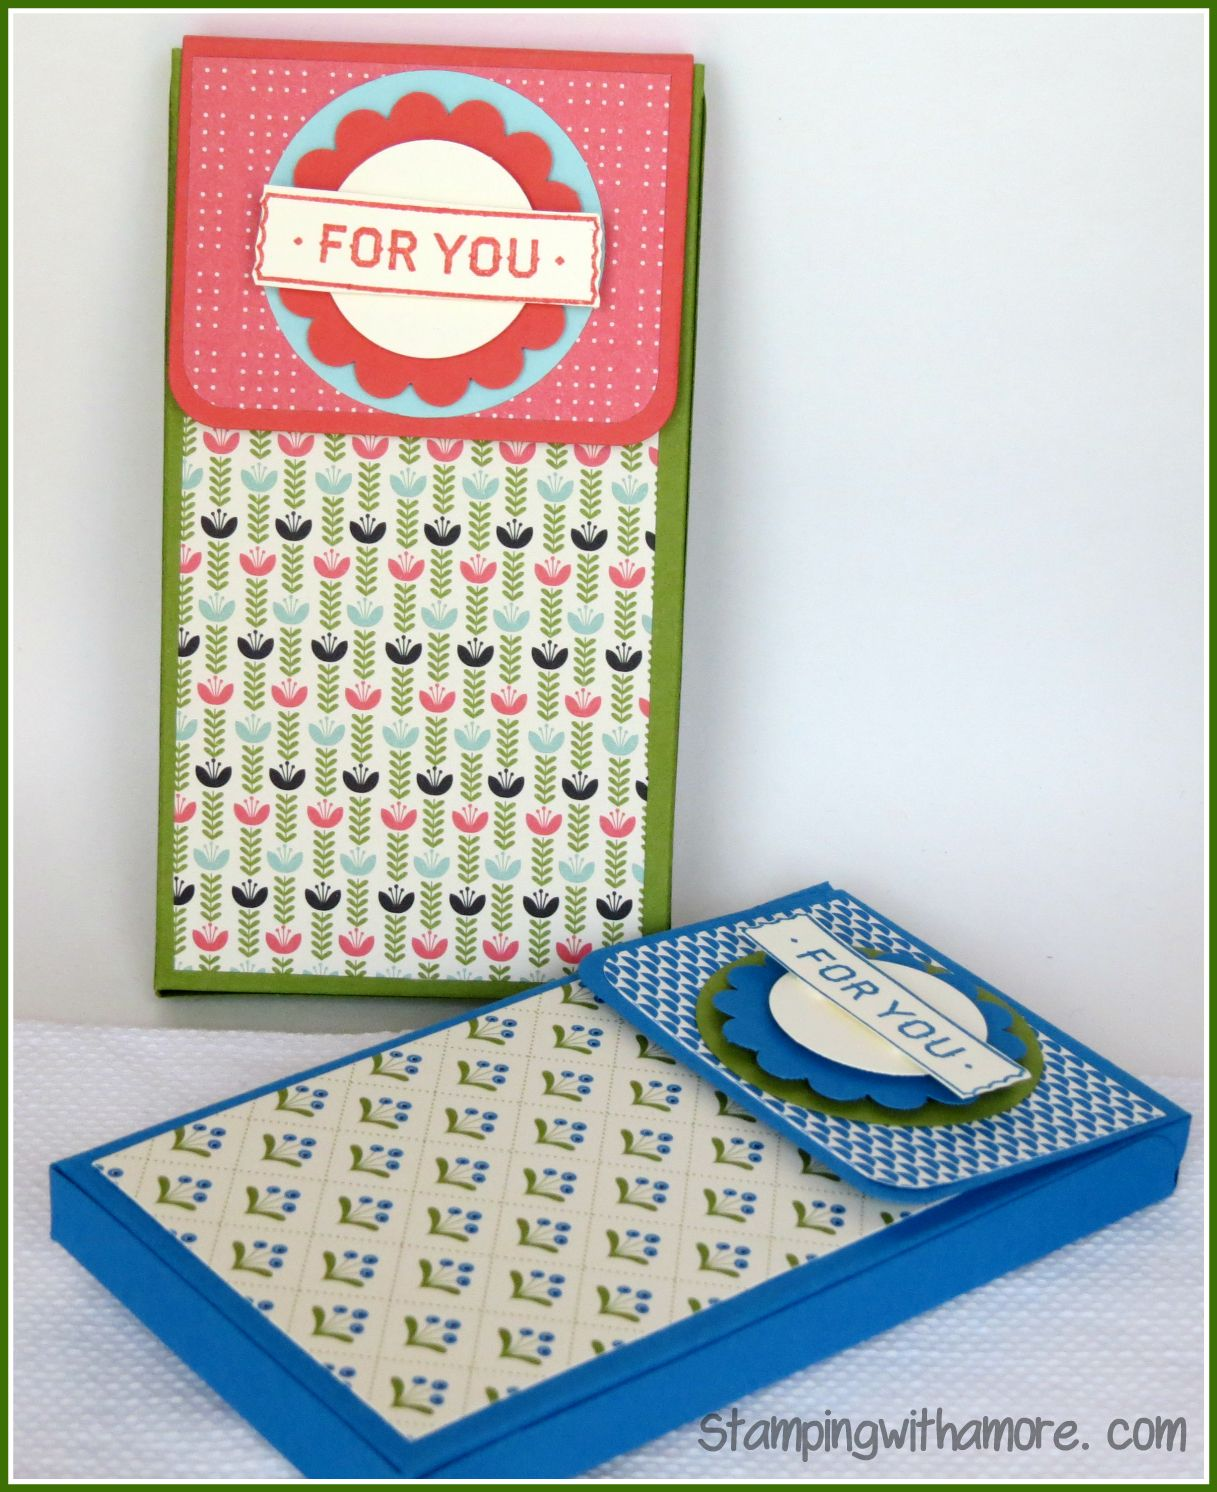 Stamping With Amore: It's FOR YOU Treat Box